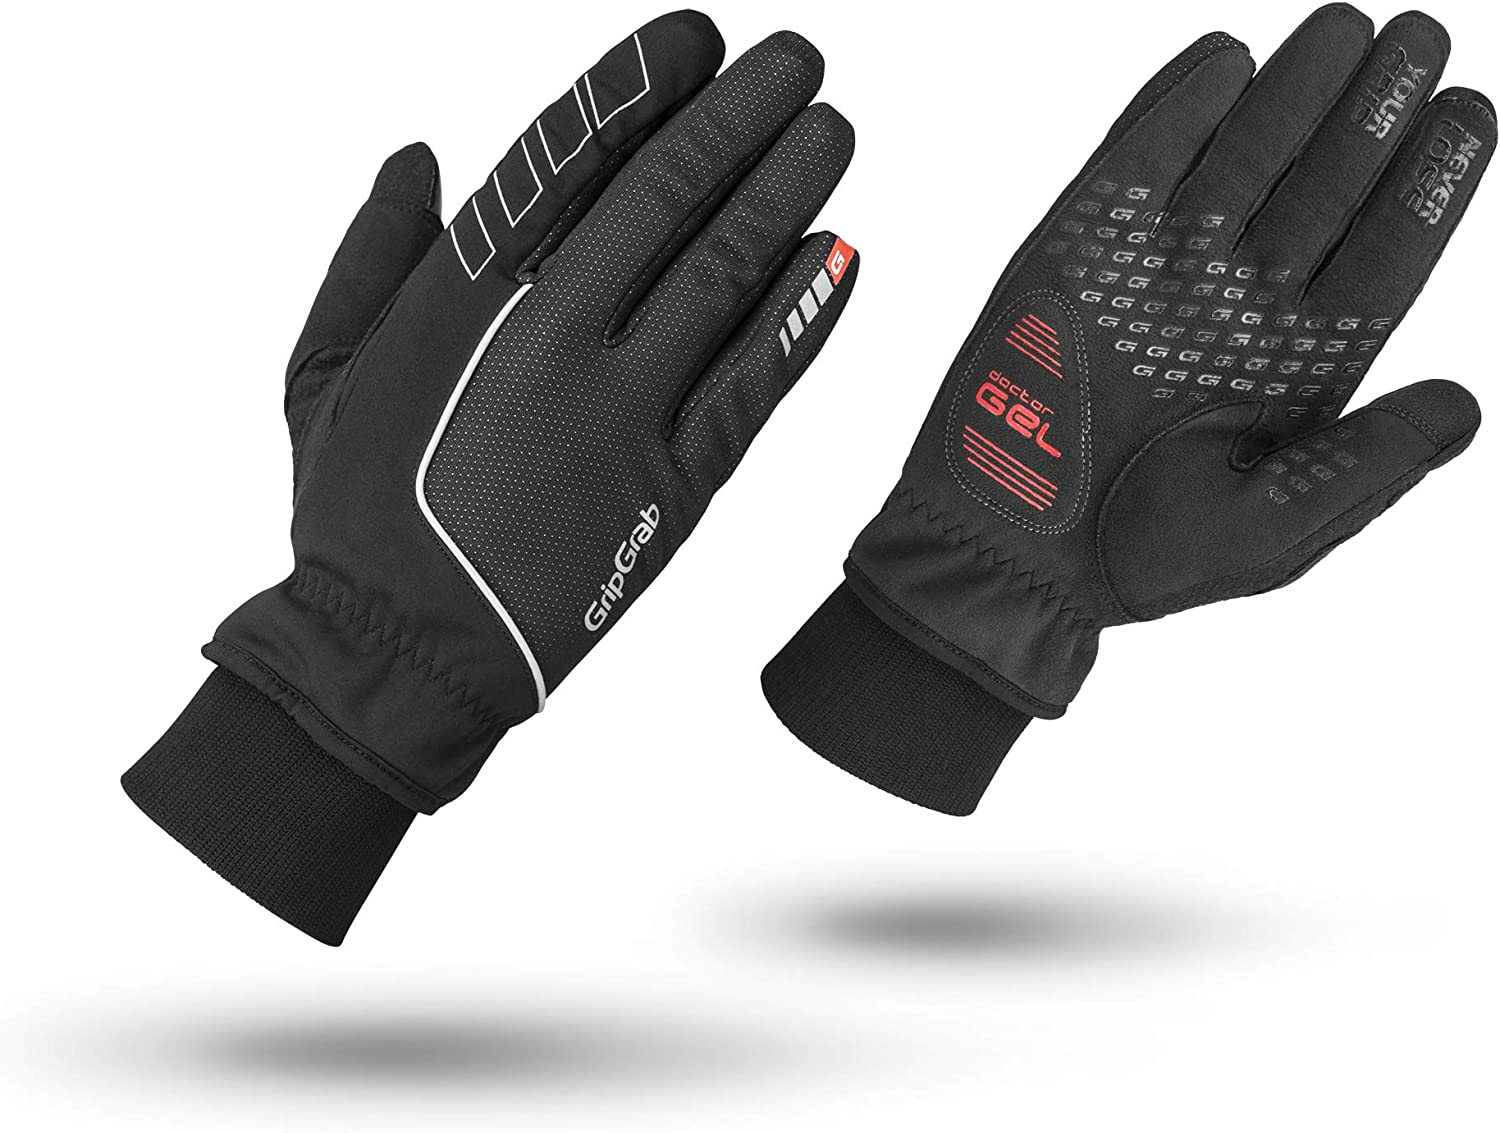 Gloves Ride Waterproof Wint Glo 016 L Black Large Gripgrab Clothing